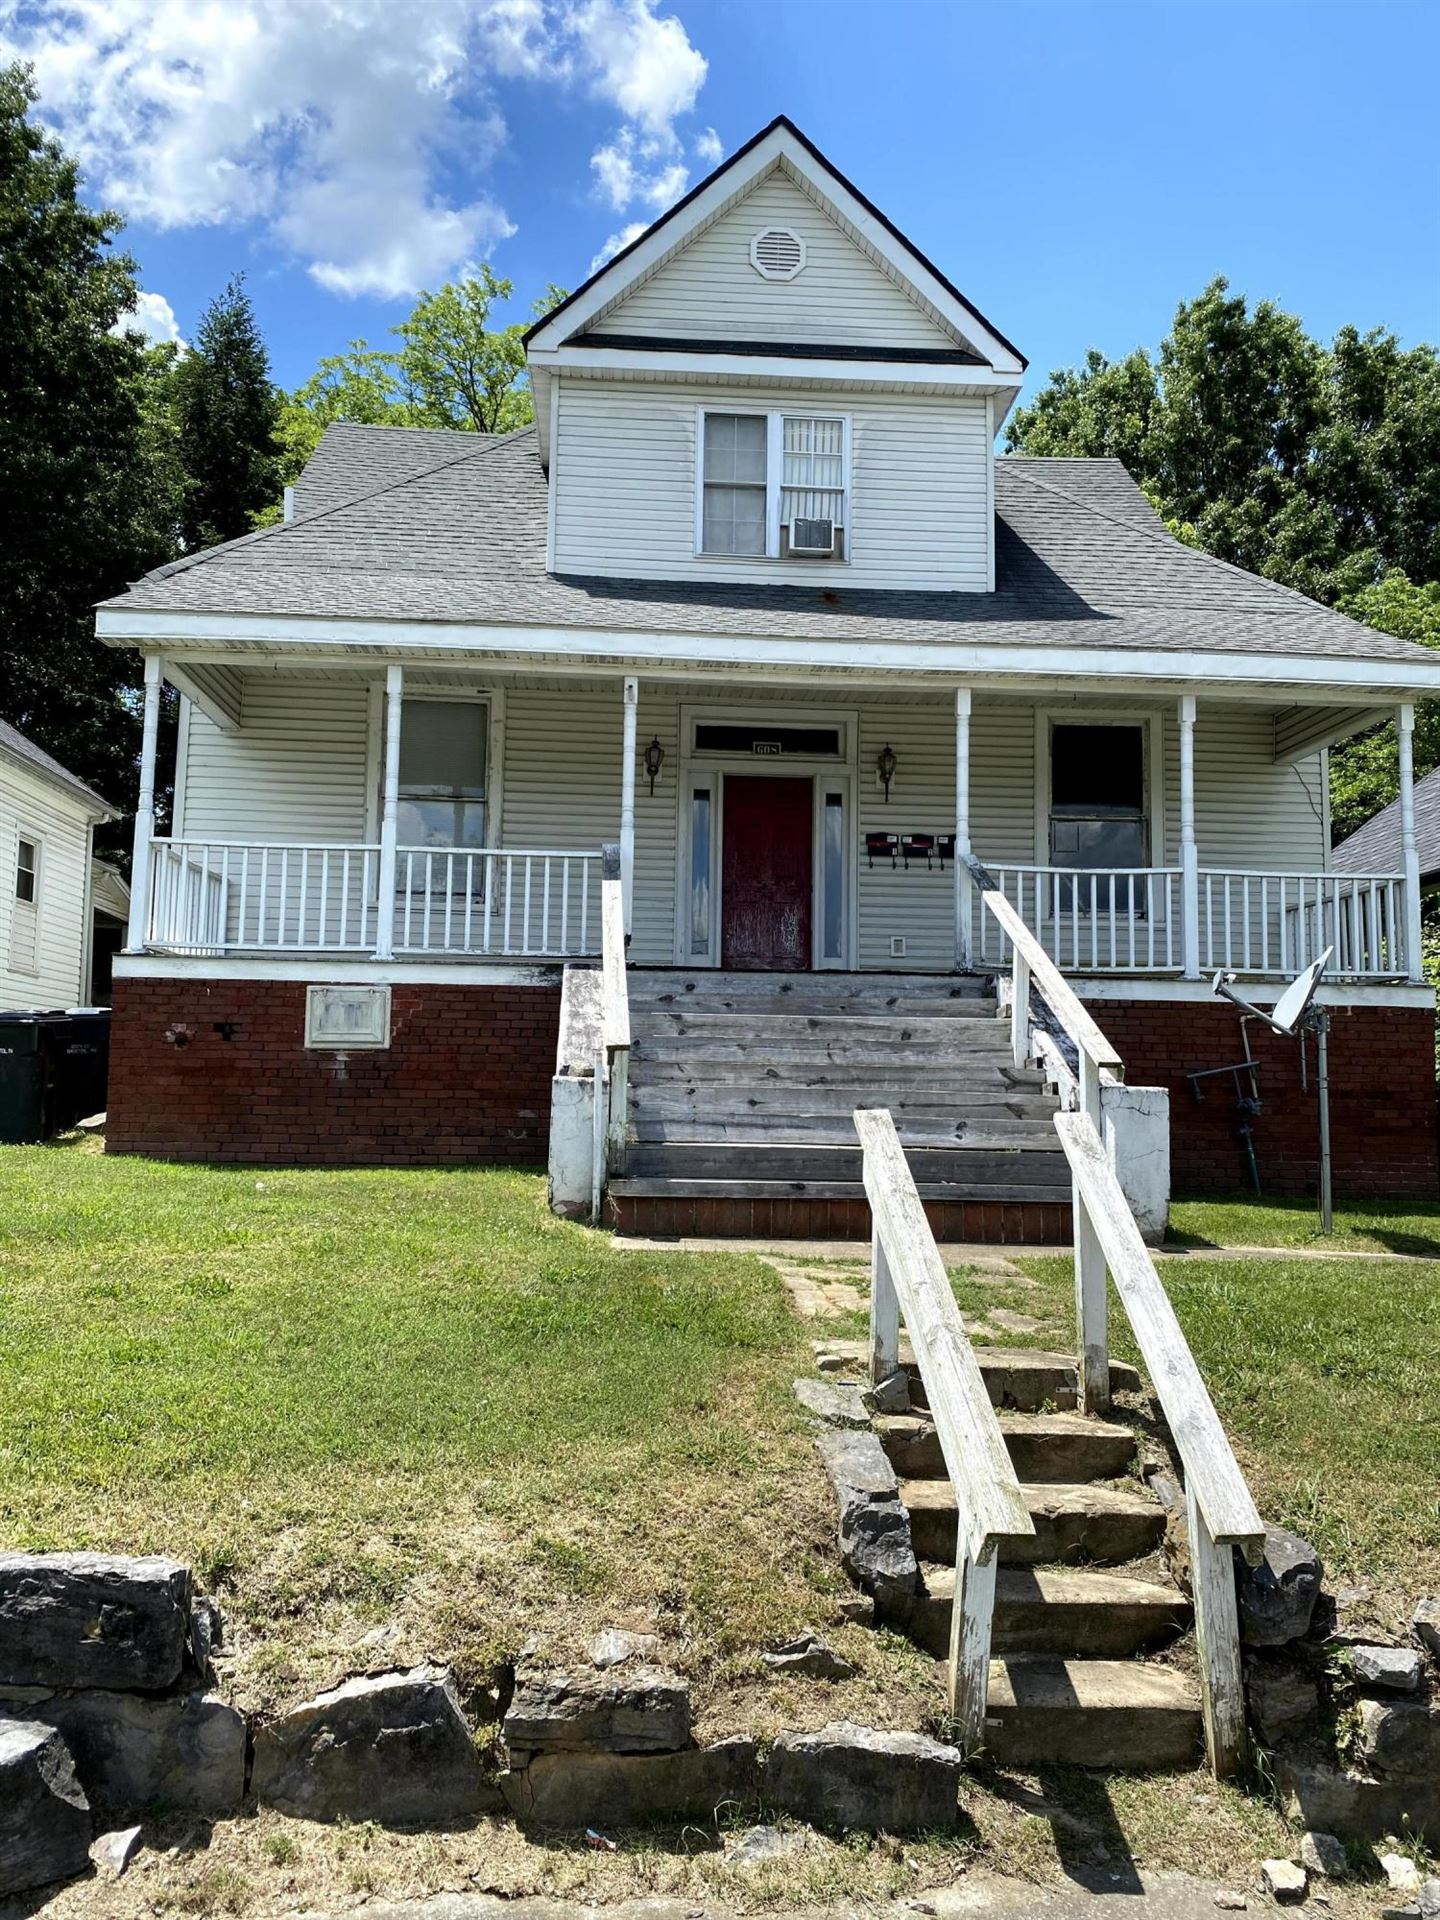 Photo of 608 Holston Avenue, Bristol, TN 37620 (MLS # 9921535)